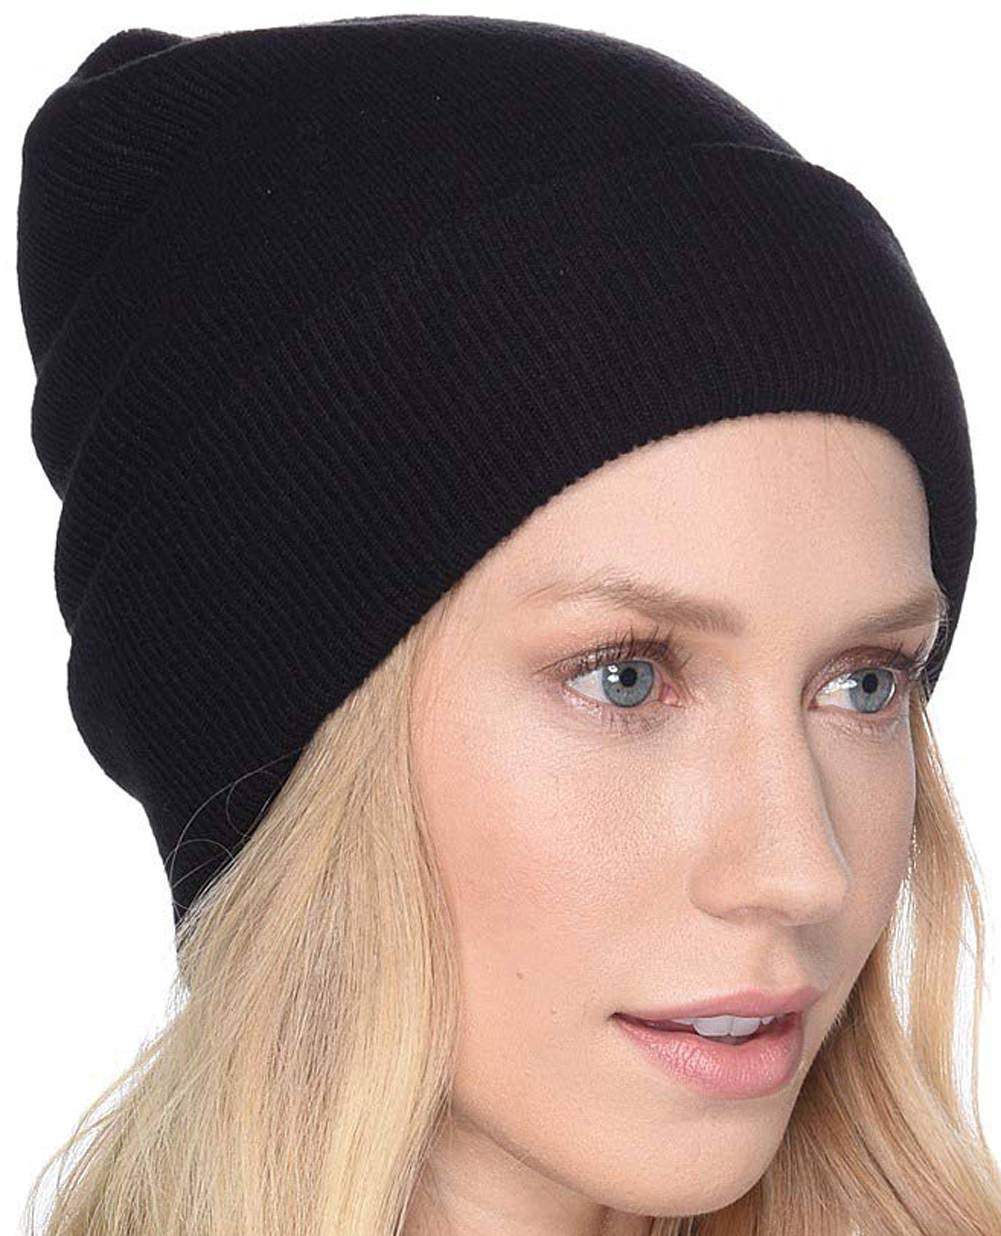 UGG Women's Luxe Knit Cuff Beanie Black One Size